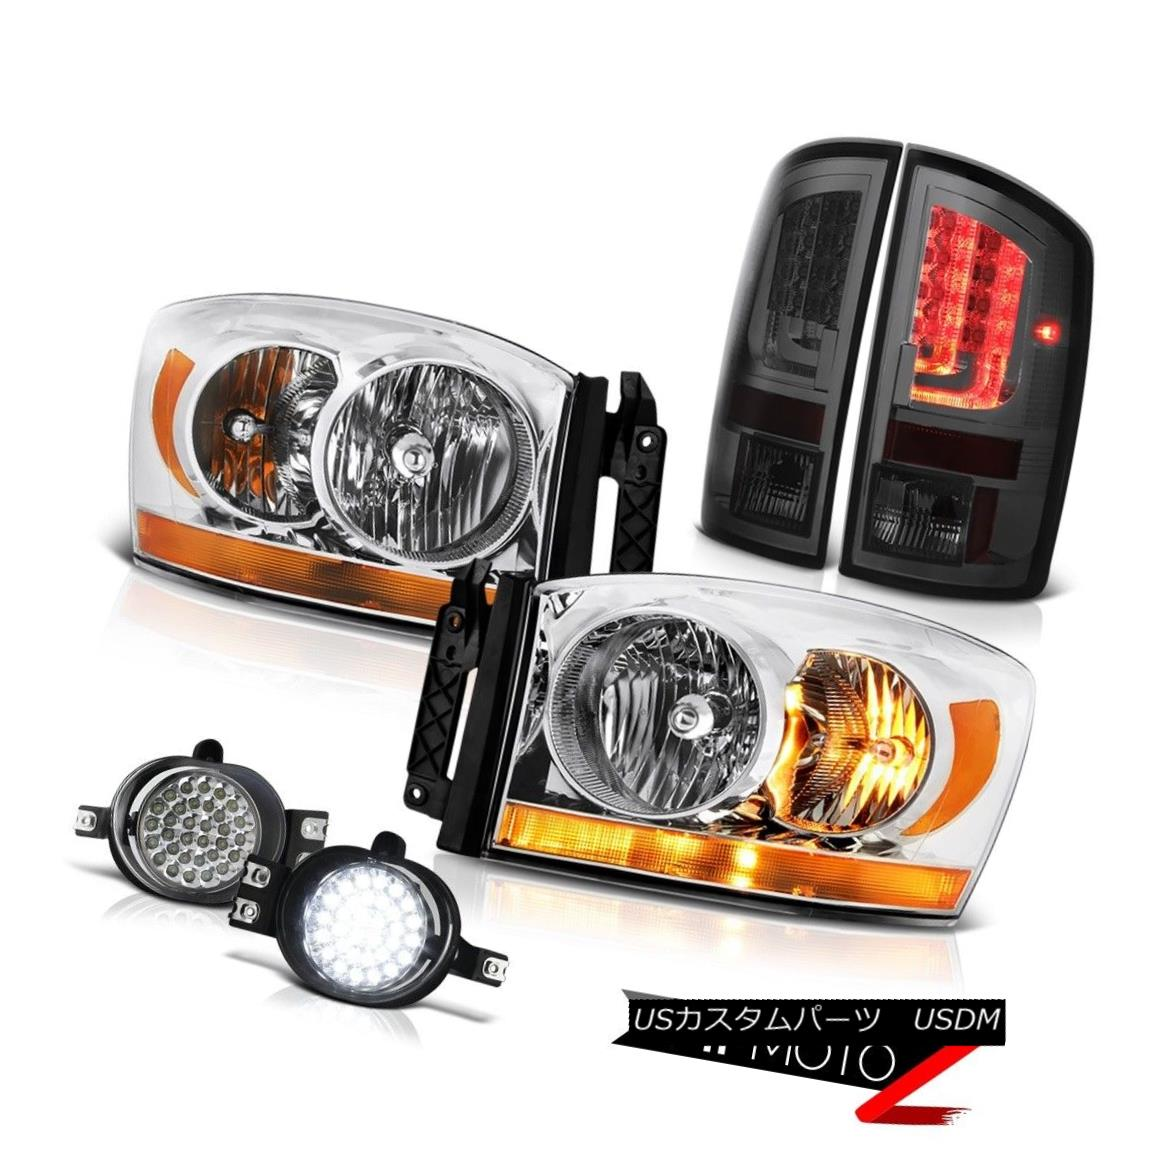 テールライト 2006 Ram 4.7L Phantom Smoke Taillights Headlamps Foglights LED Drl